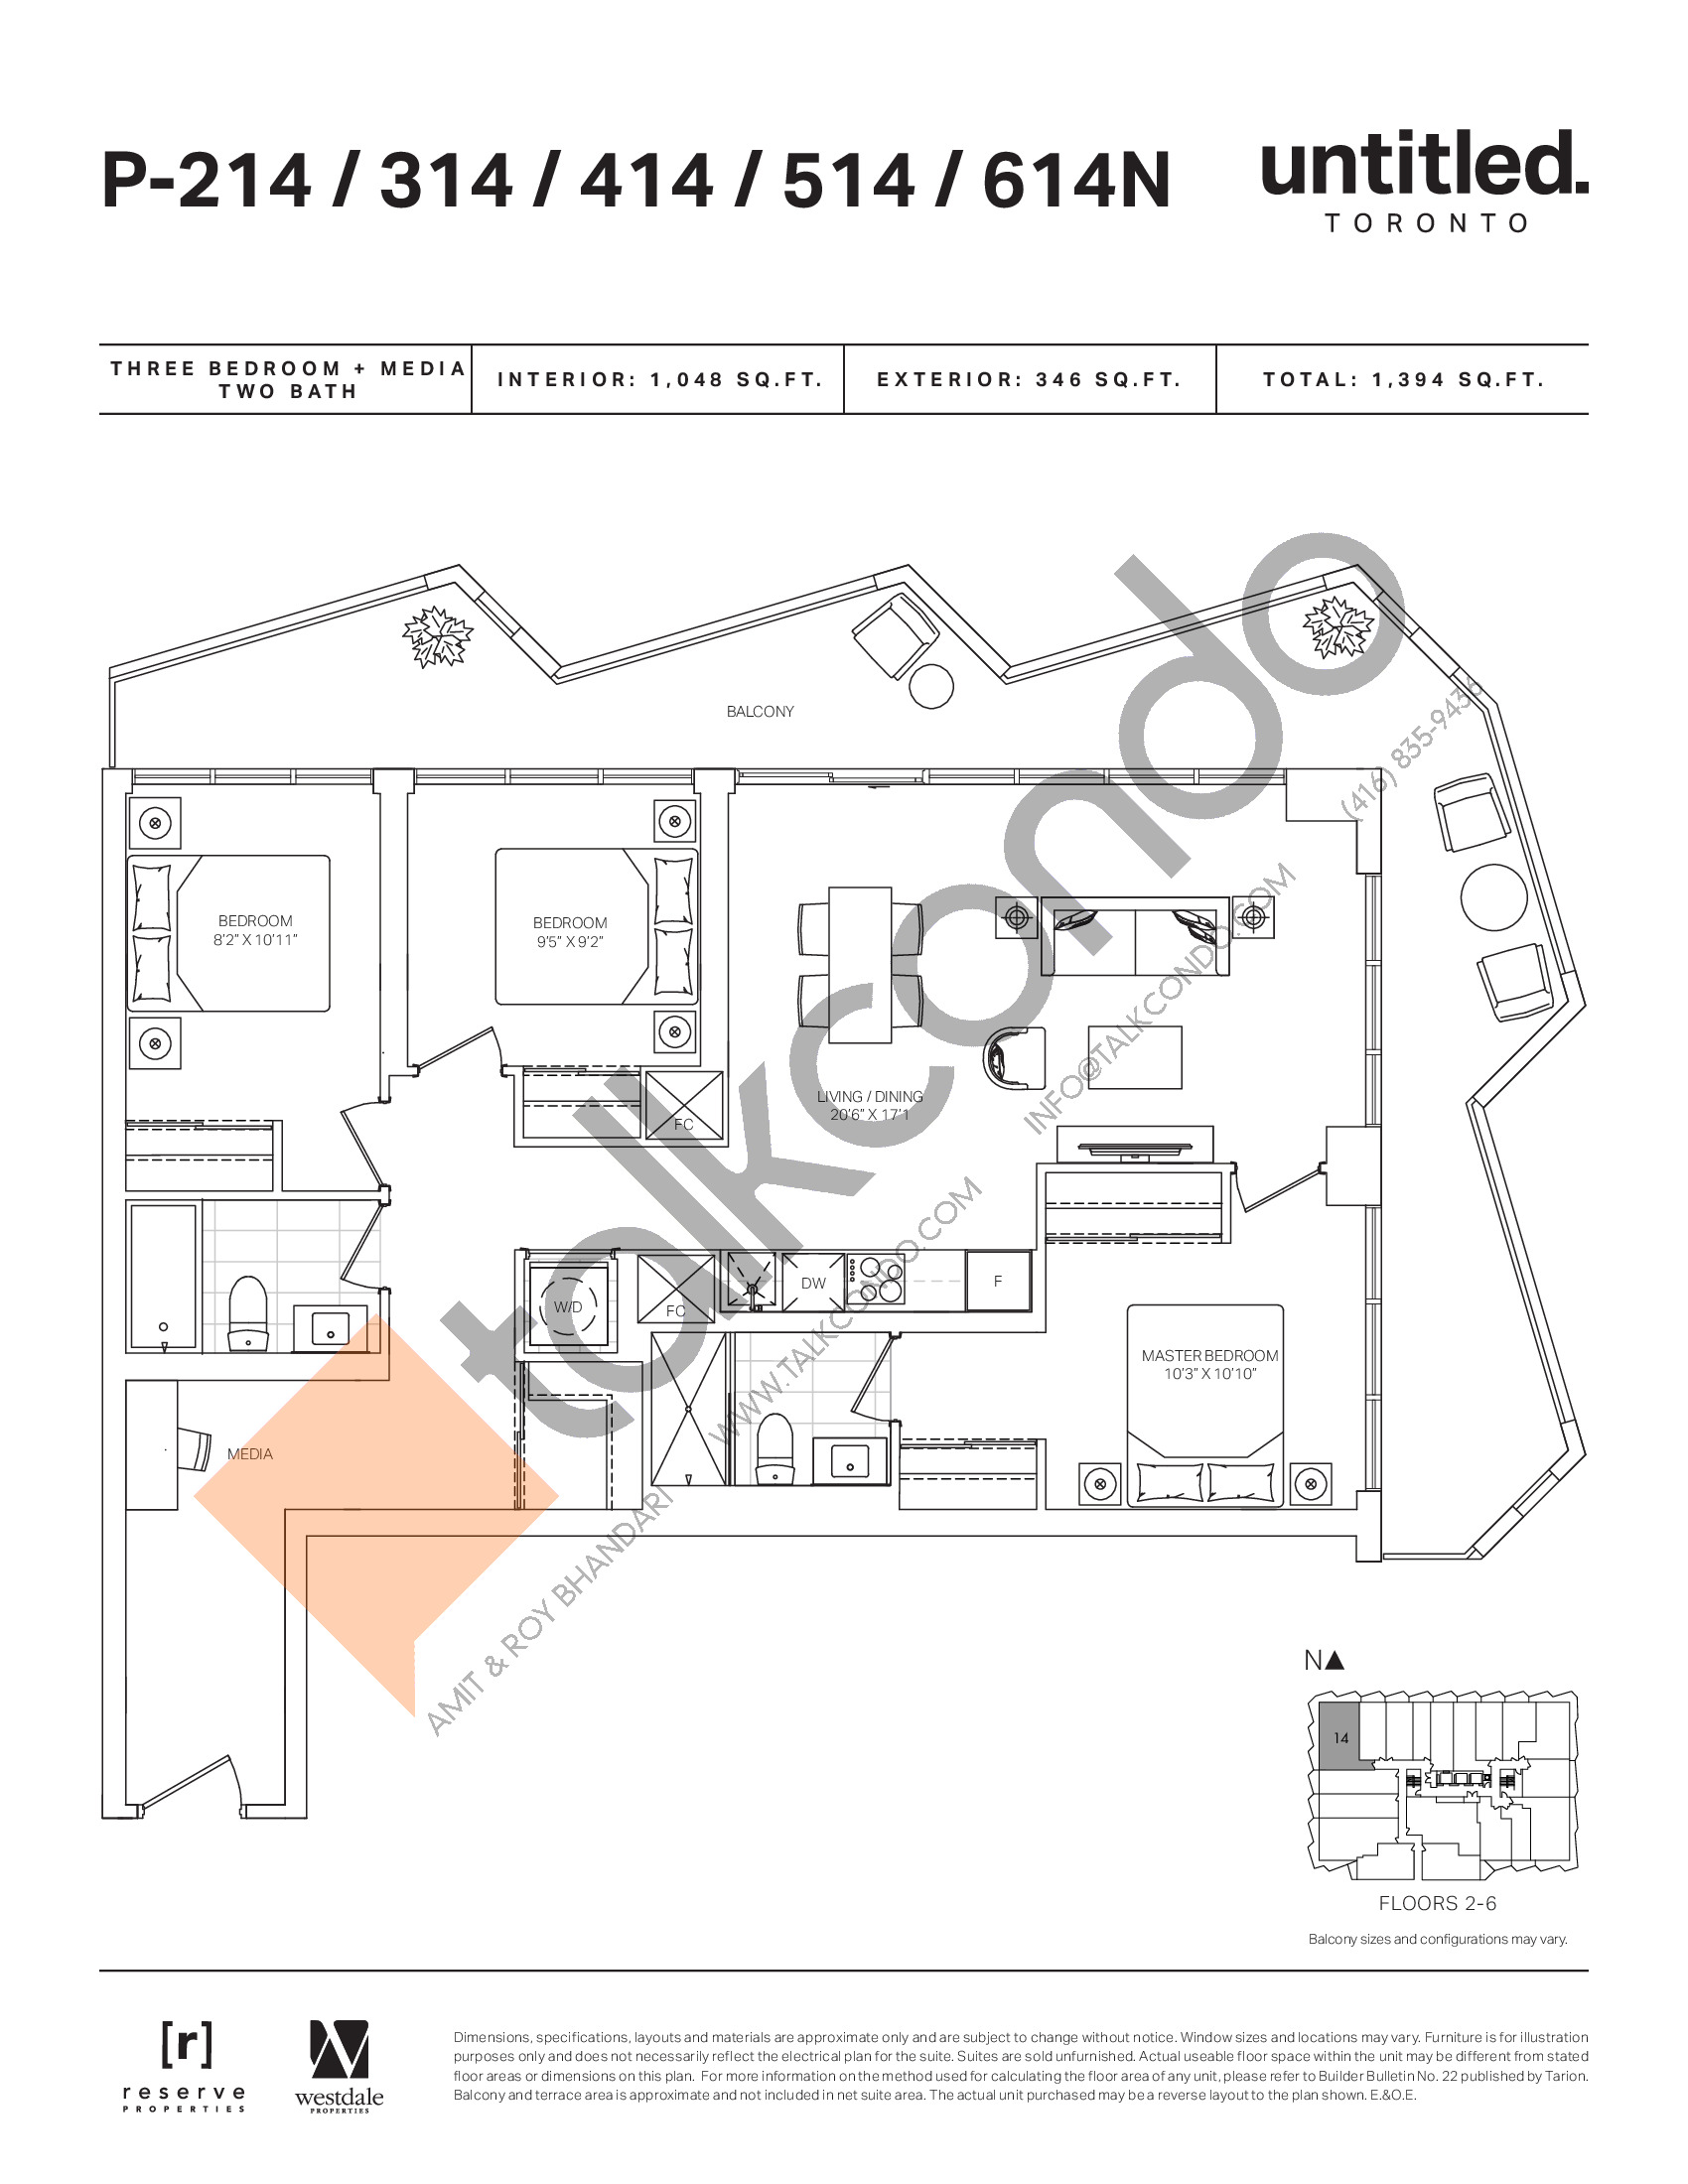 P-214/314/414/514/614N Floor Plan at Untitled North Tower Condos - 1048 sq.ft